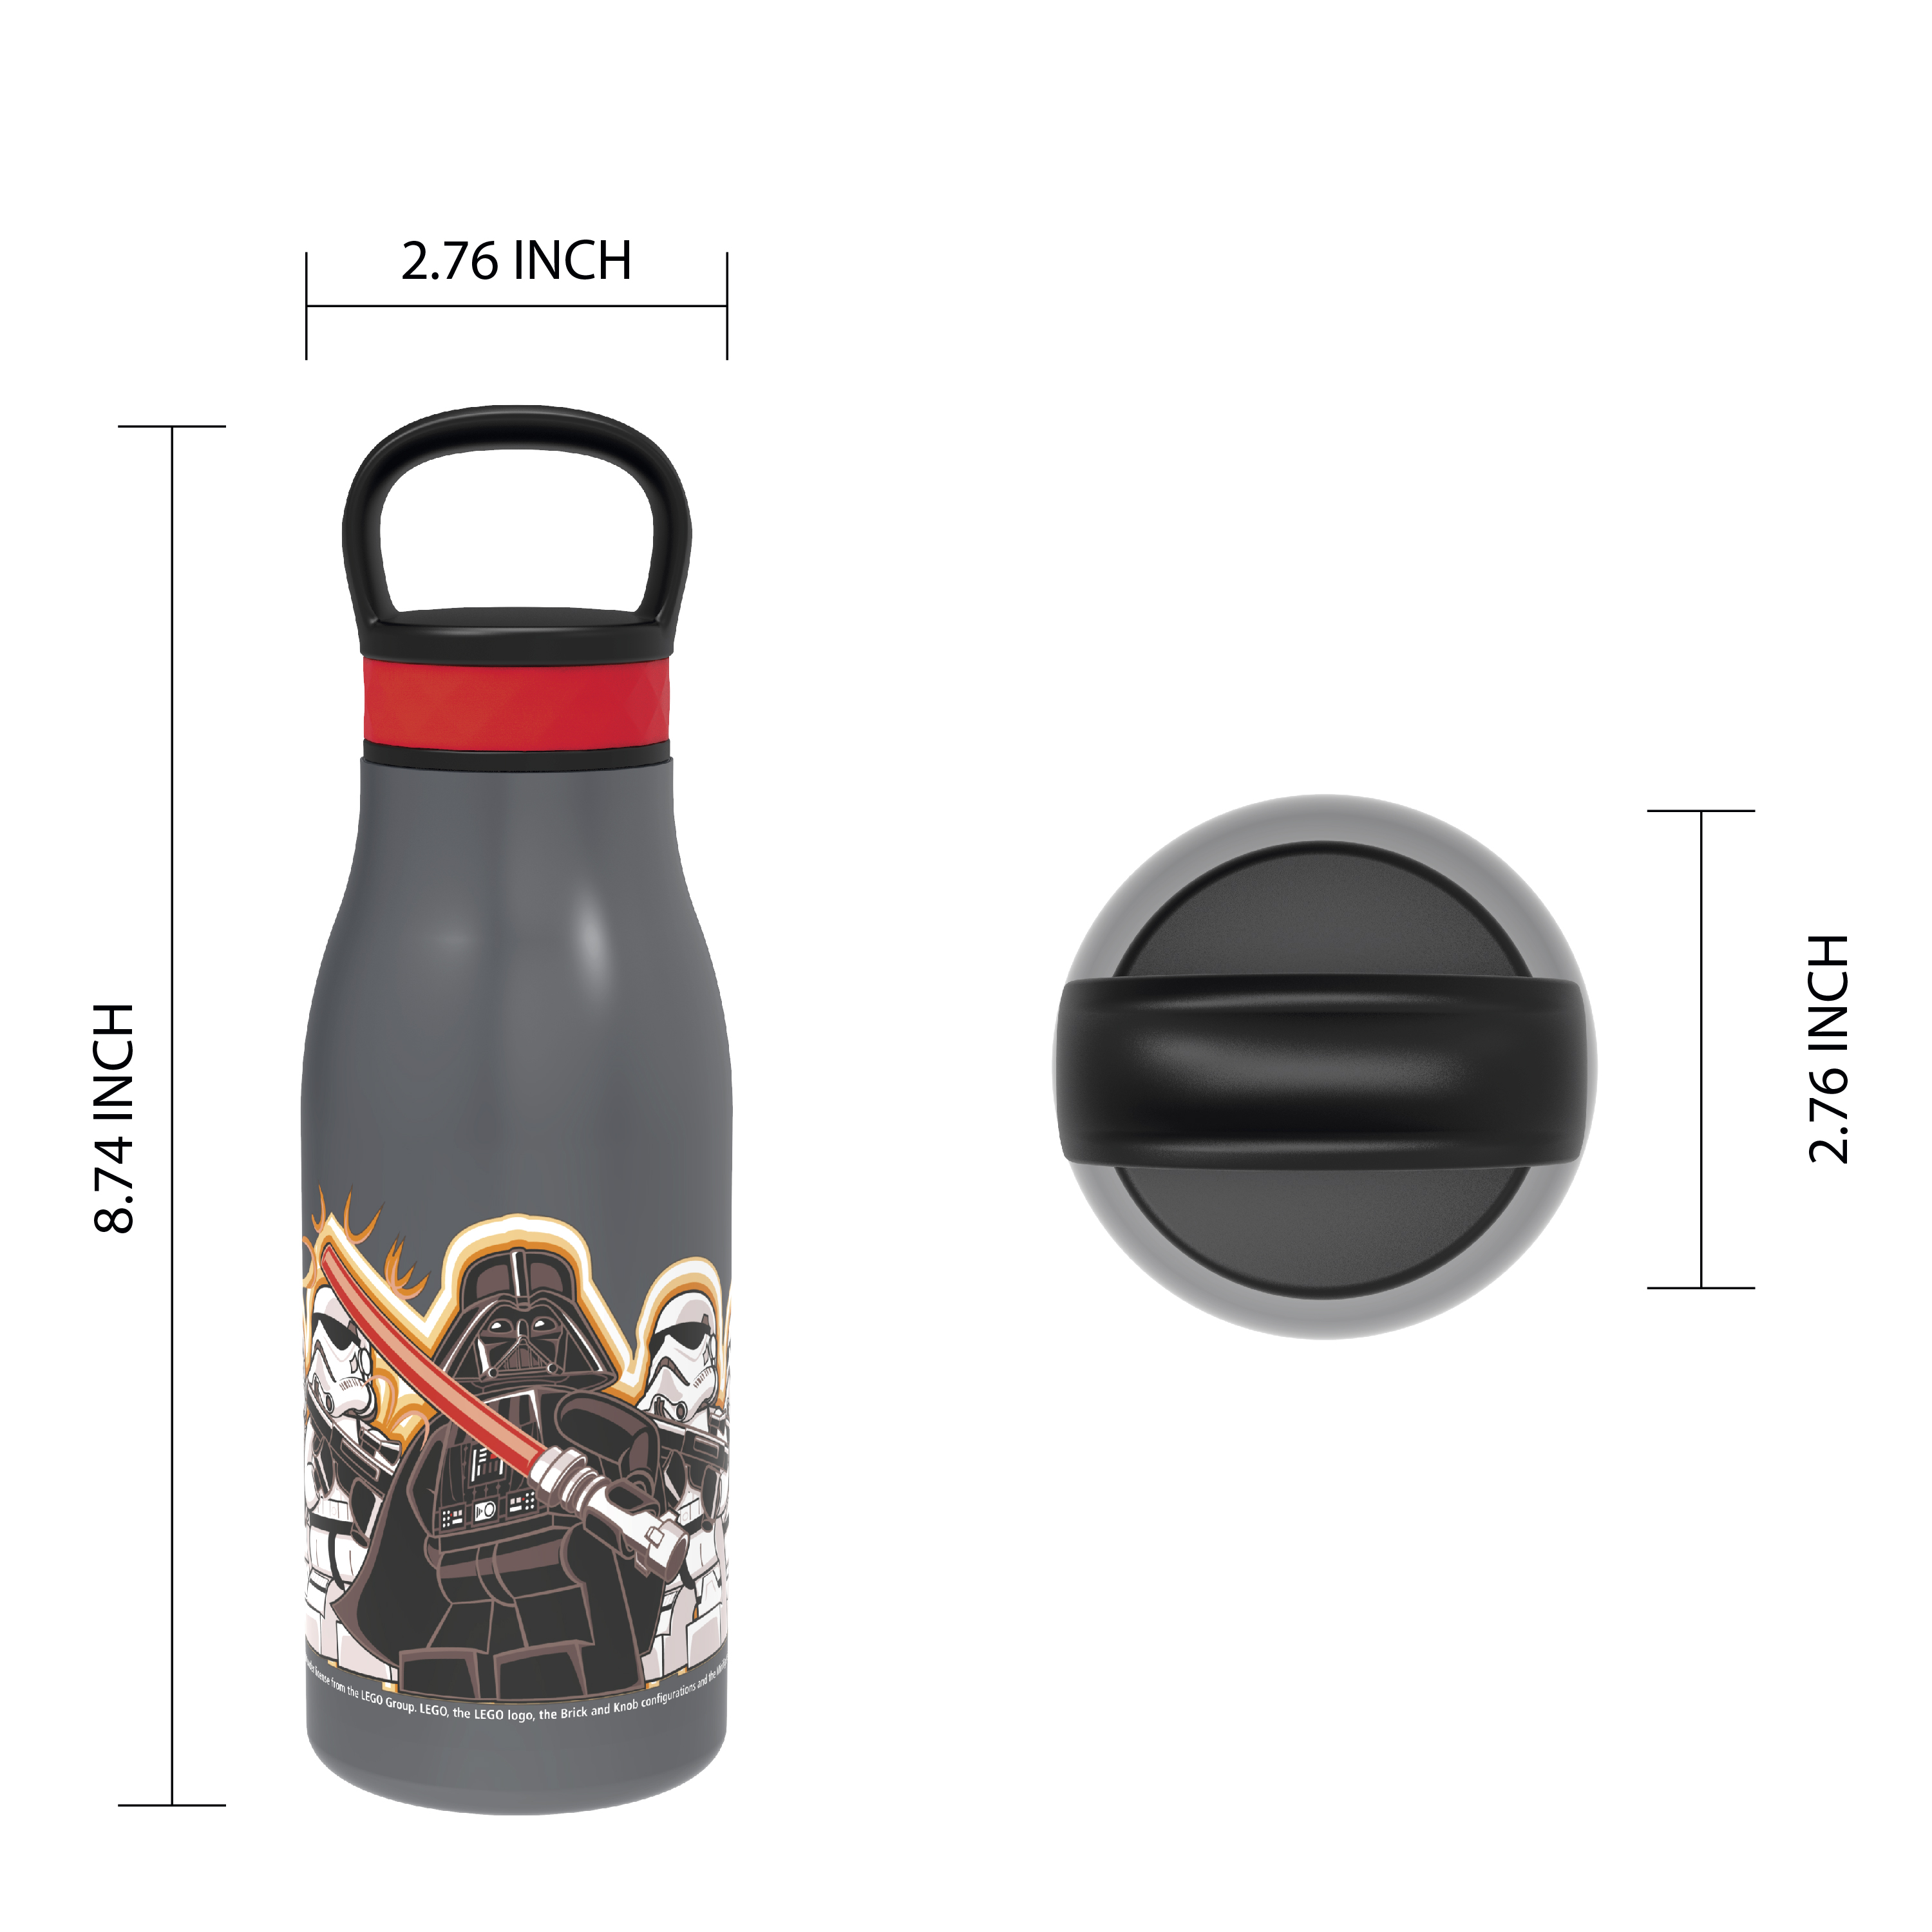 Lego Star Wars 12 ounce Stainless Steel Vacuum Insulated Water Bottle, Darth Vader slideshow image 4